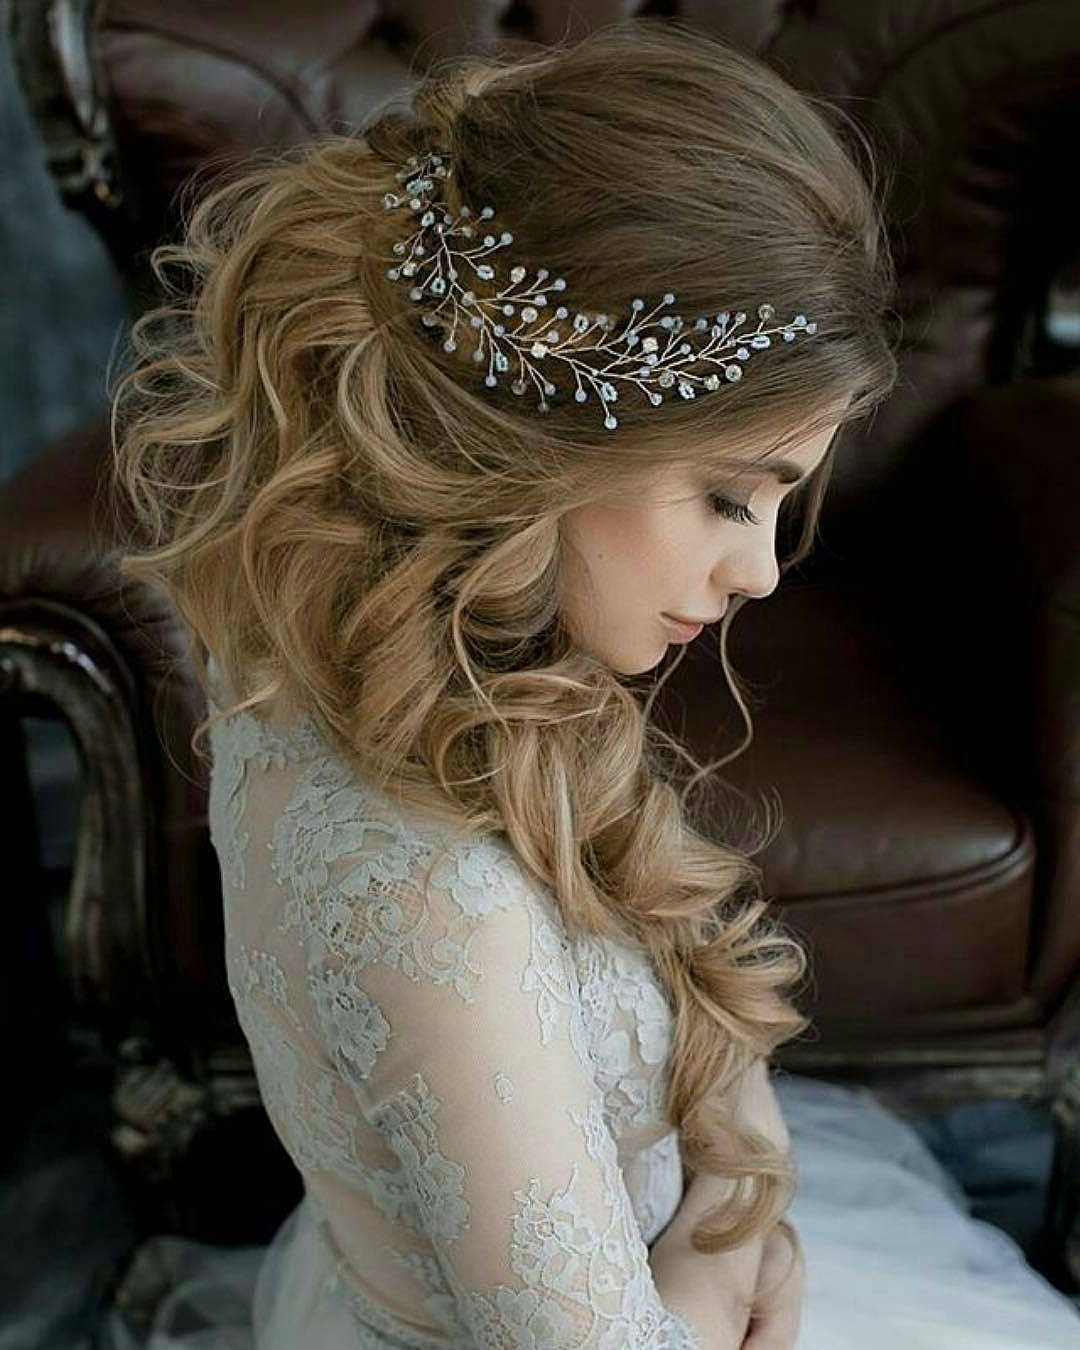 10 Lavish Wedding Hairstyles For Long Hair – Wedding Hairstyle Ideas Throughout Trendy Wedding Hairstyles For Bride (View 3 of 15)